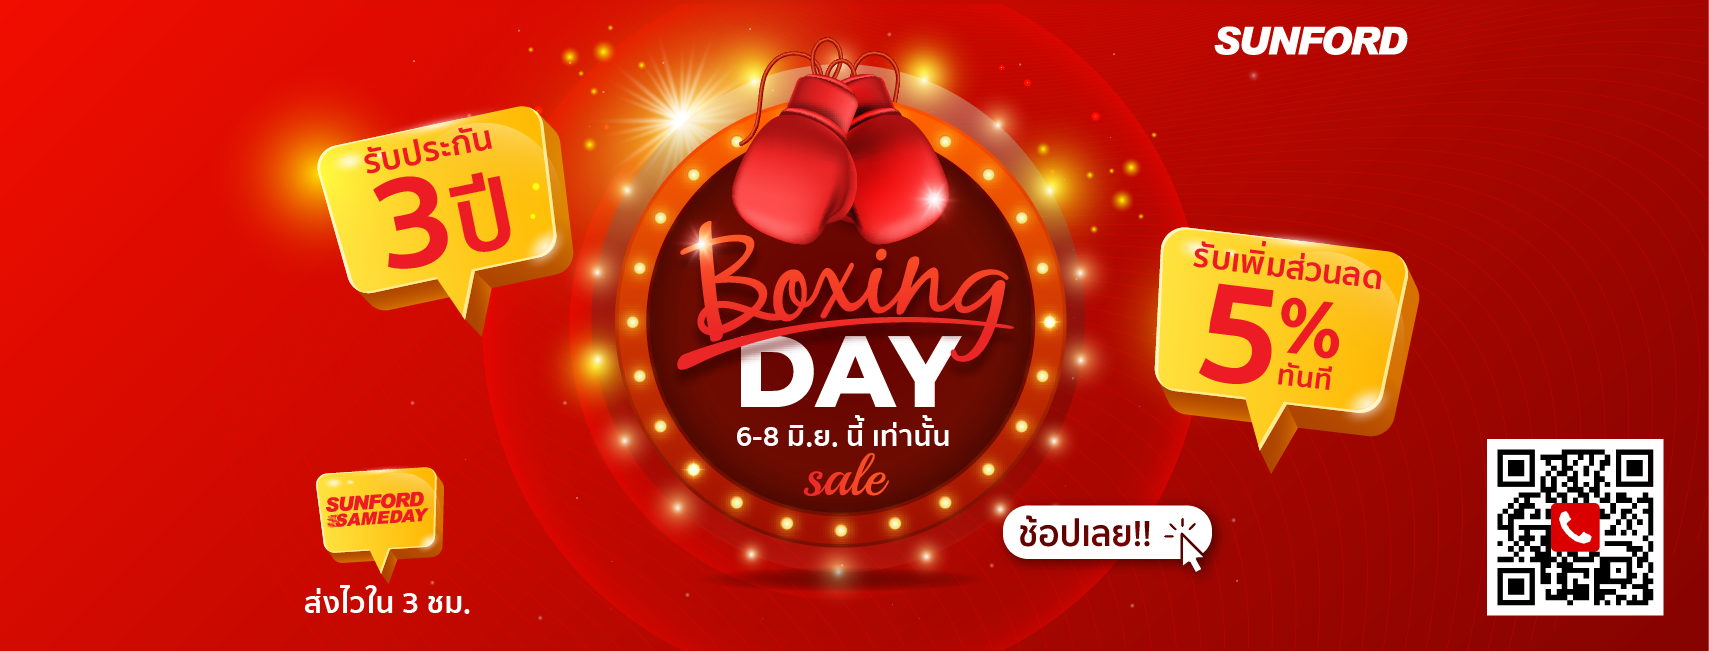 SUNFORD 6.6 Boxing Day Sale